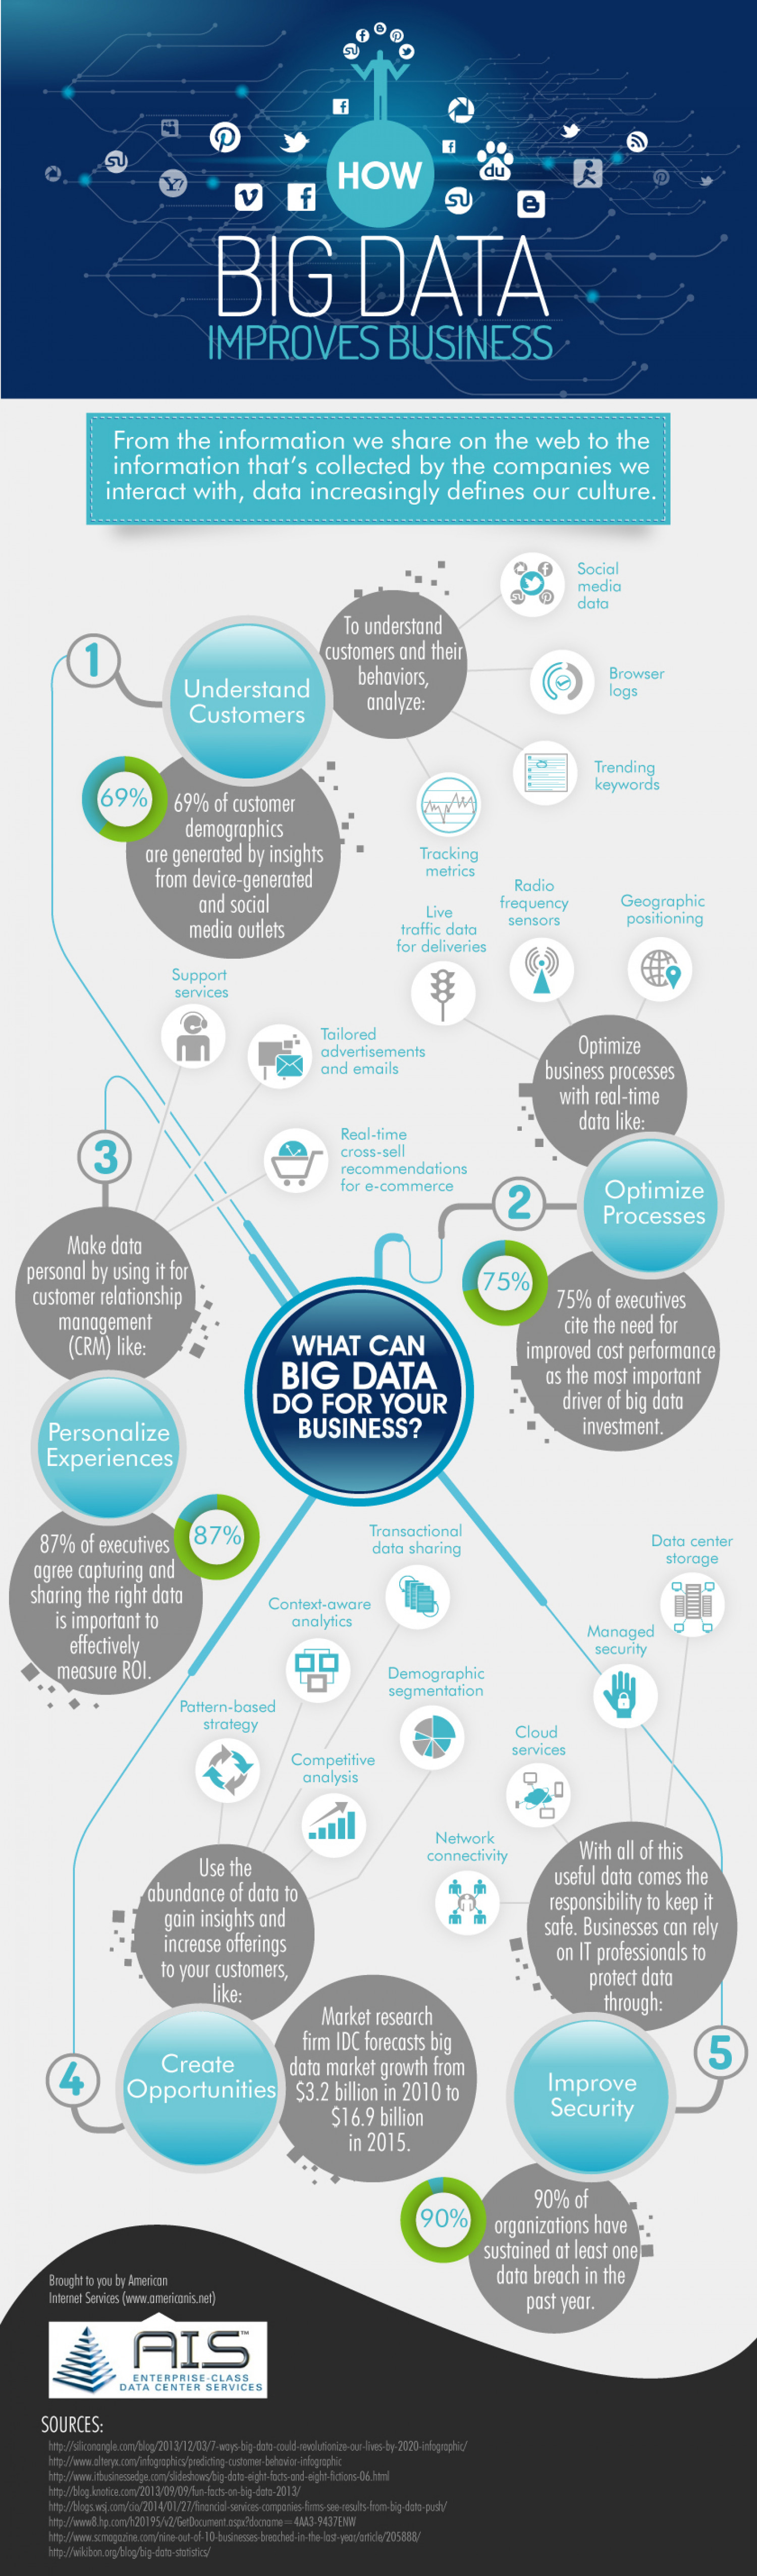 How Big Data Improves Business Infographic